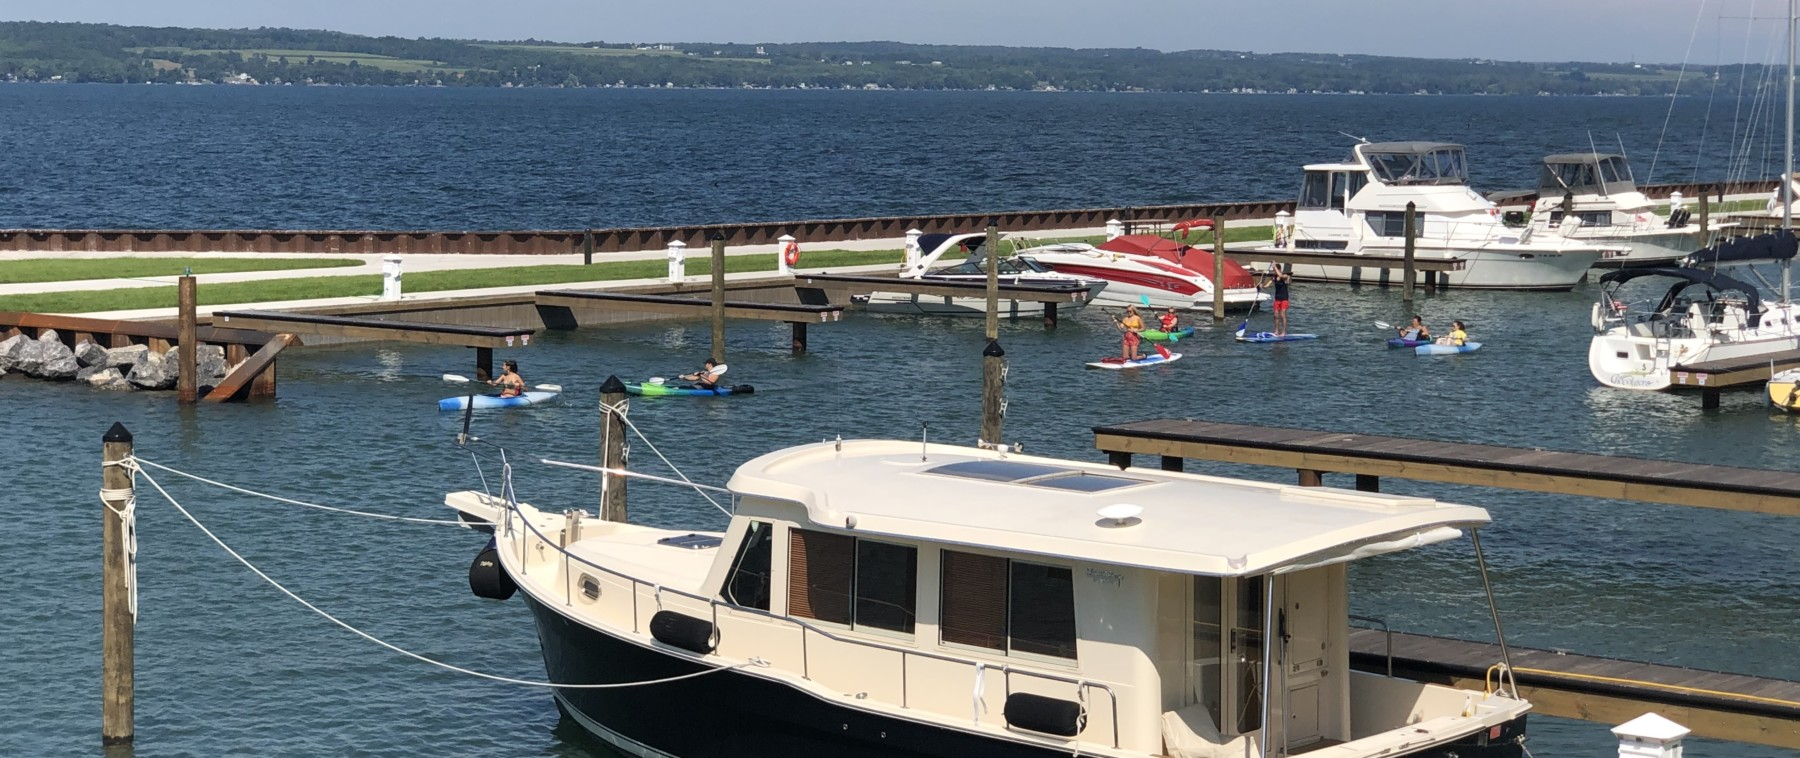 Kayakers in Samsen Marina on Seneca Lake